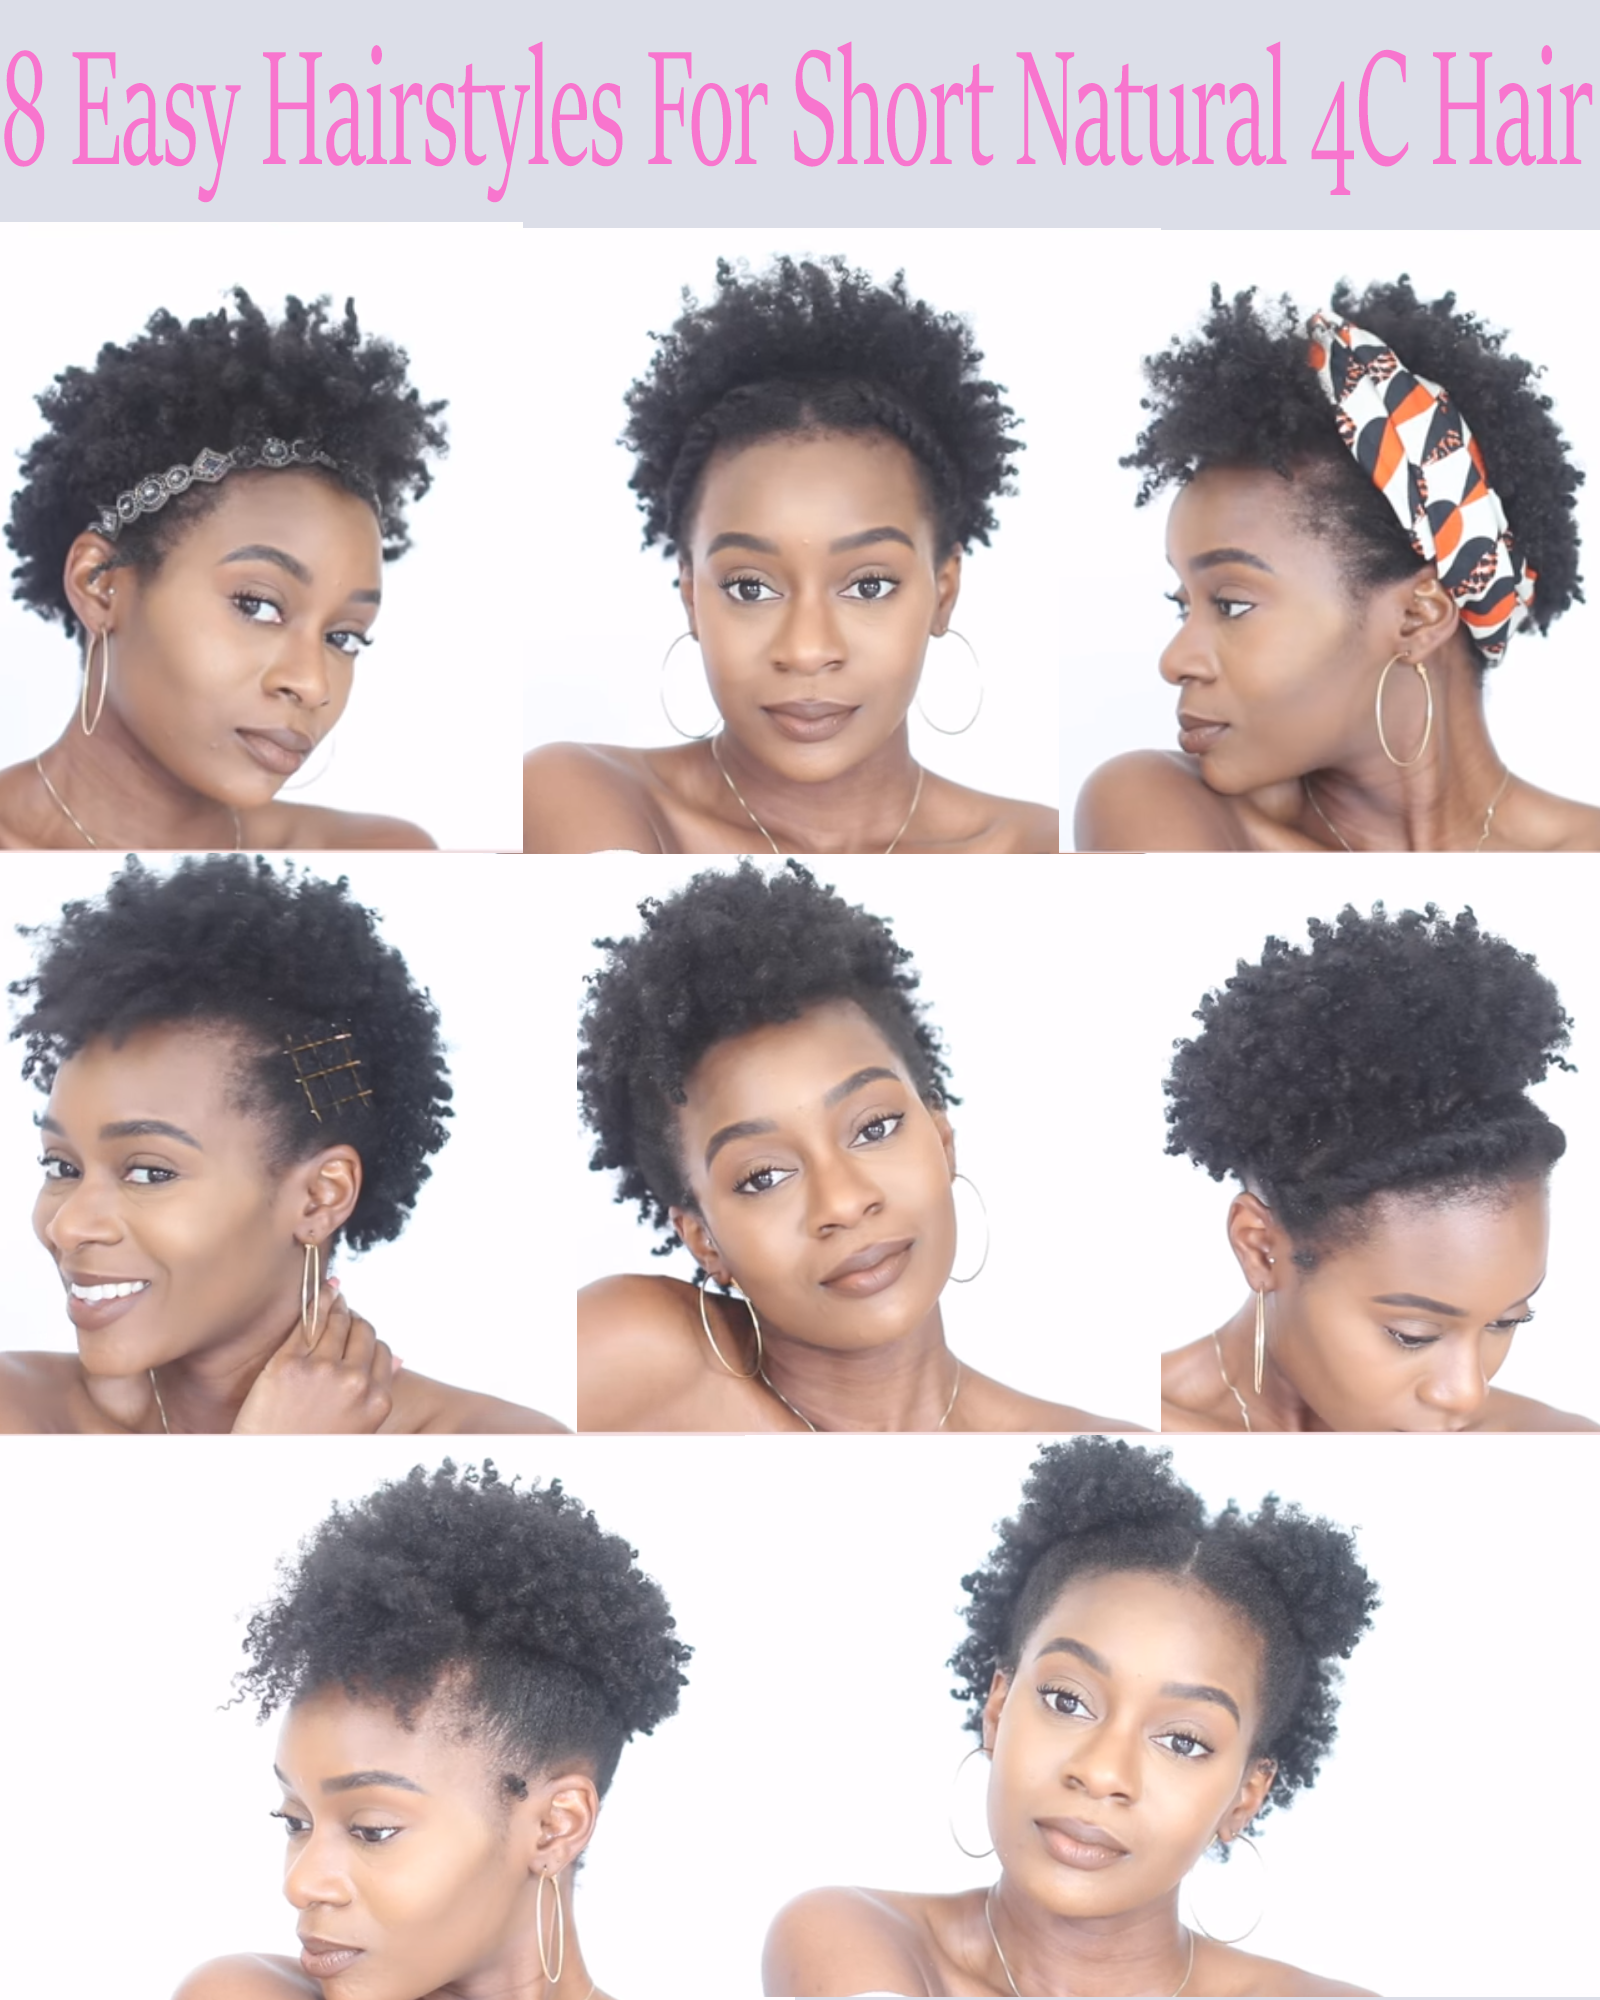 8 Easy Protective Hairstyles For Short Natural 4c Hair That Will Not Dam In 2020 Short Natural Hair Styles Natural Hair Styles For Black Women Natural Hair Styles Easy